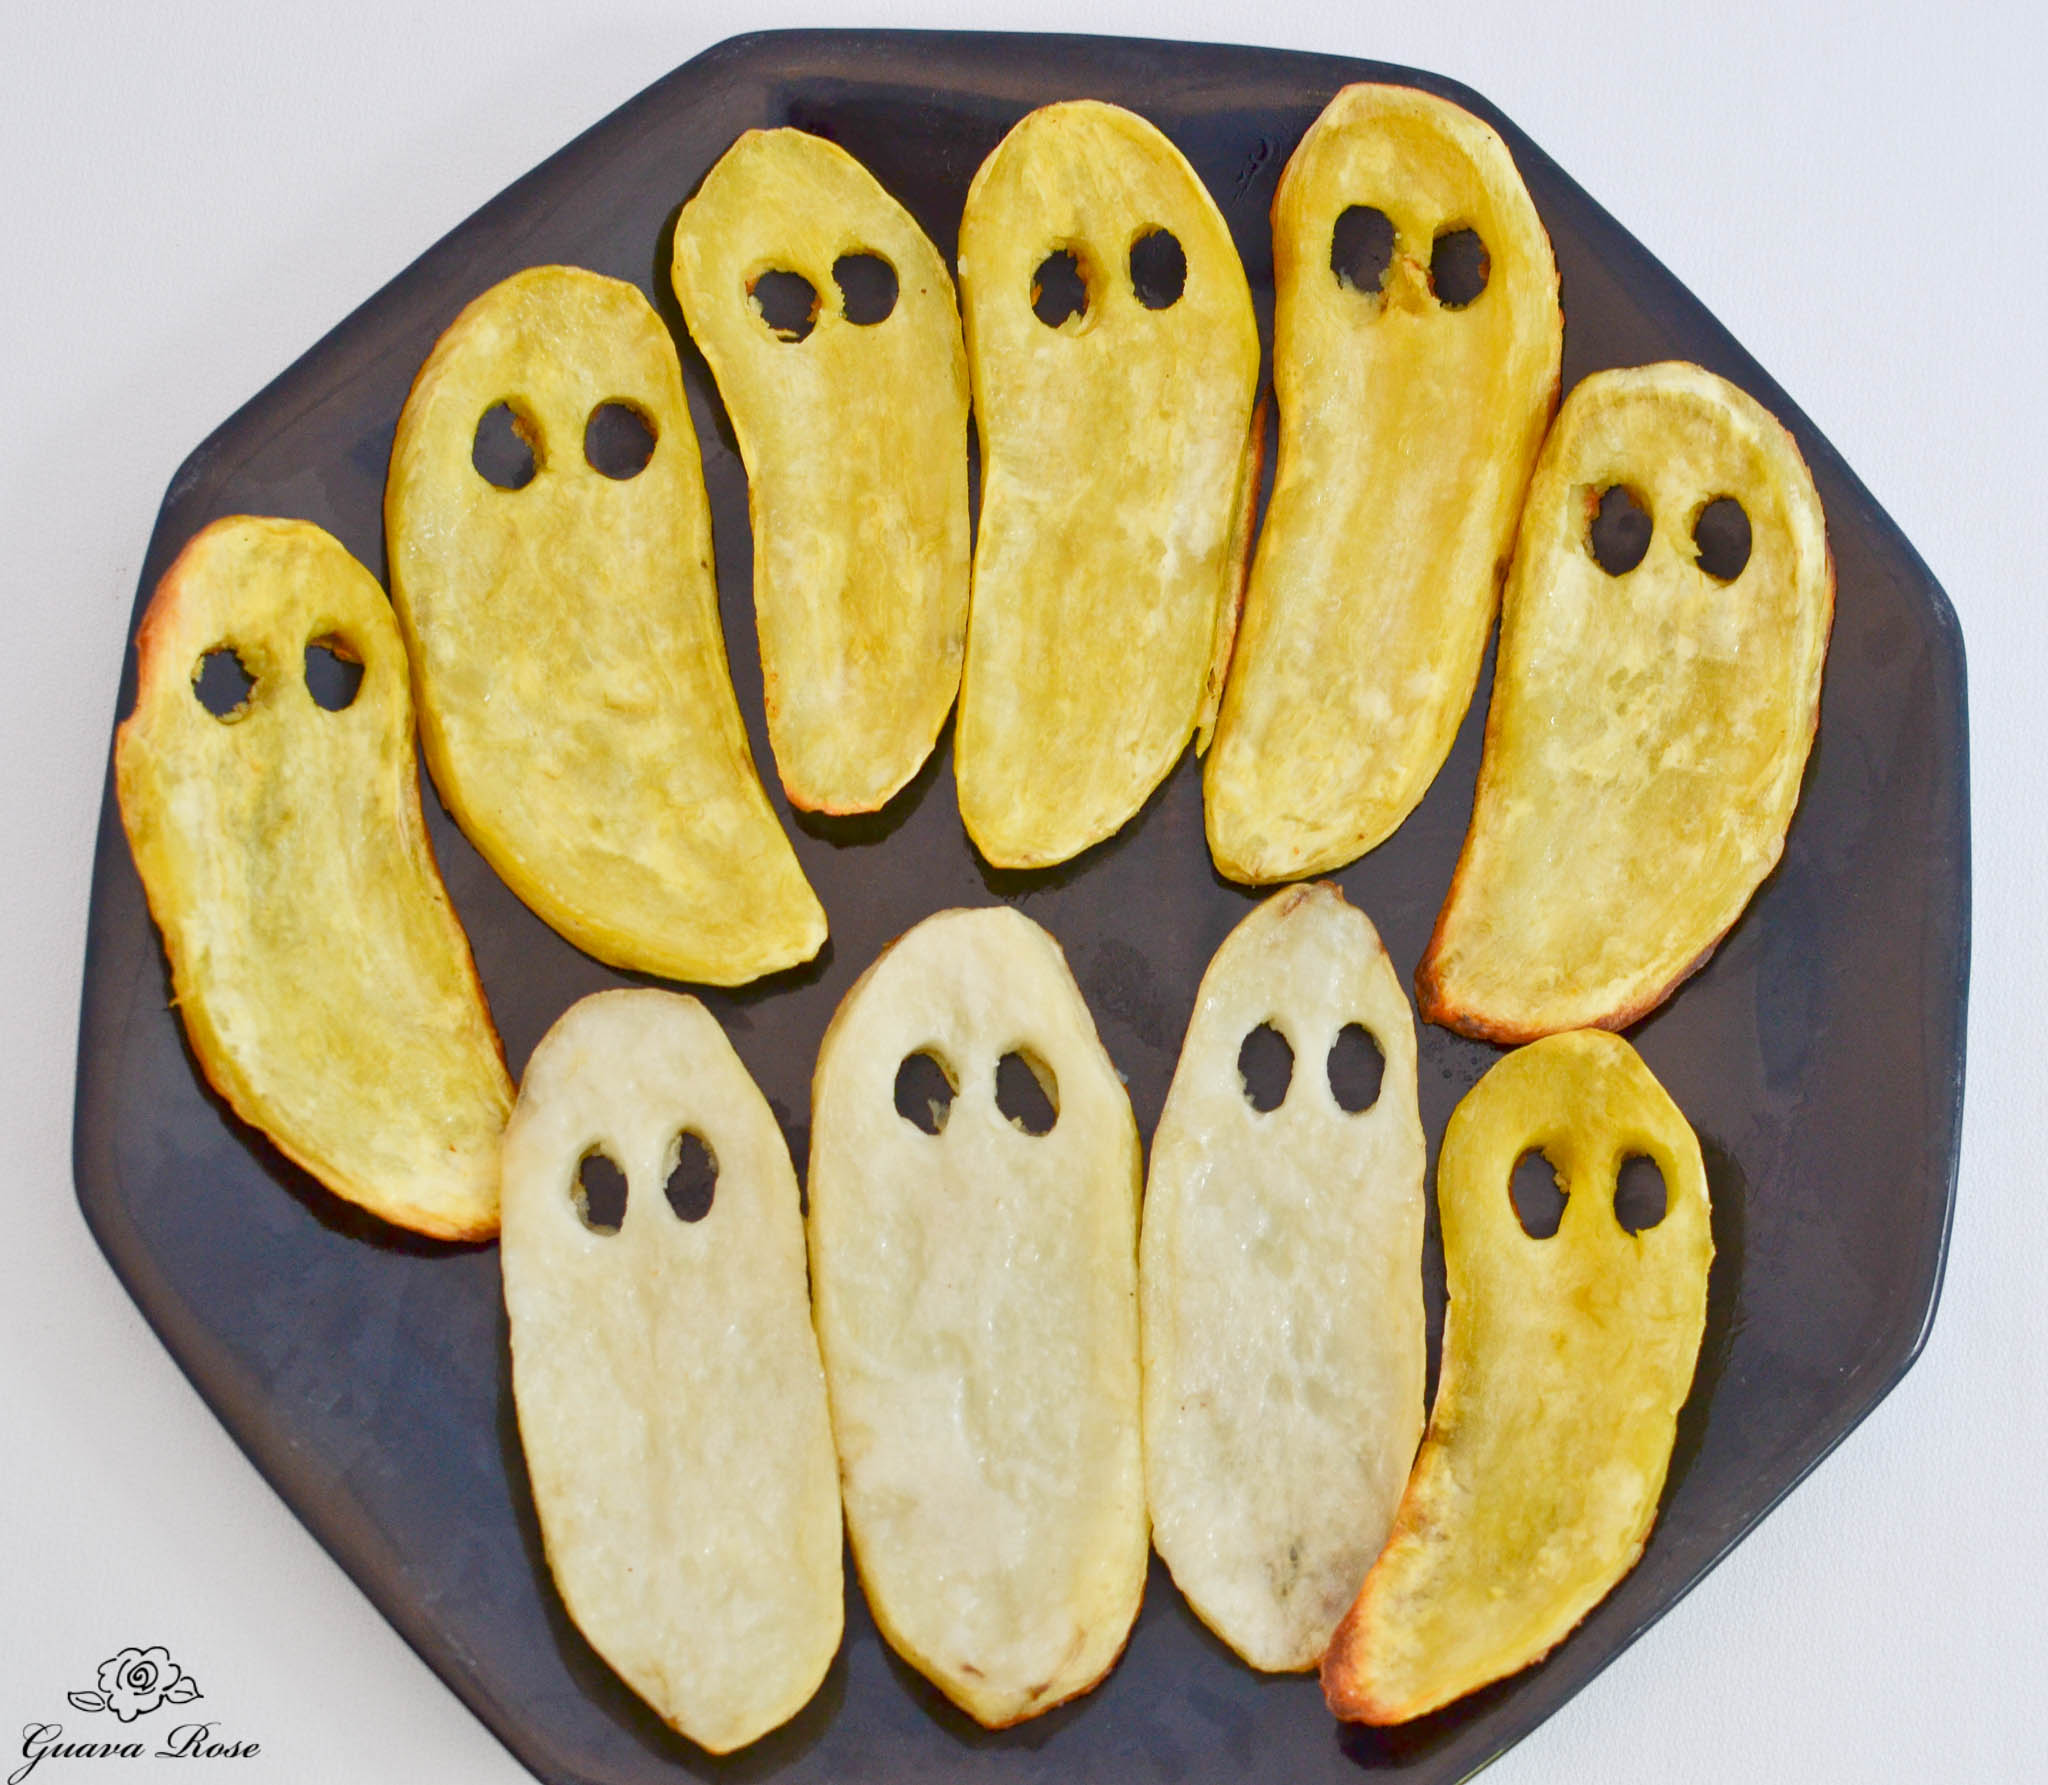 Roasted Sweet potato and russet potato ghosts